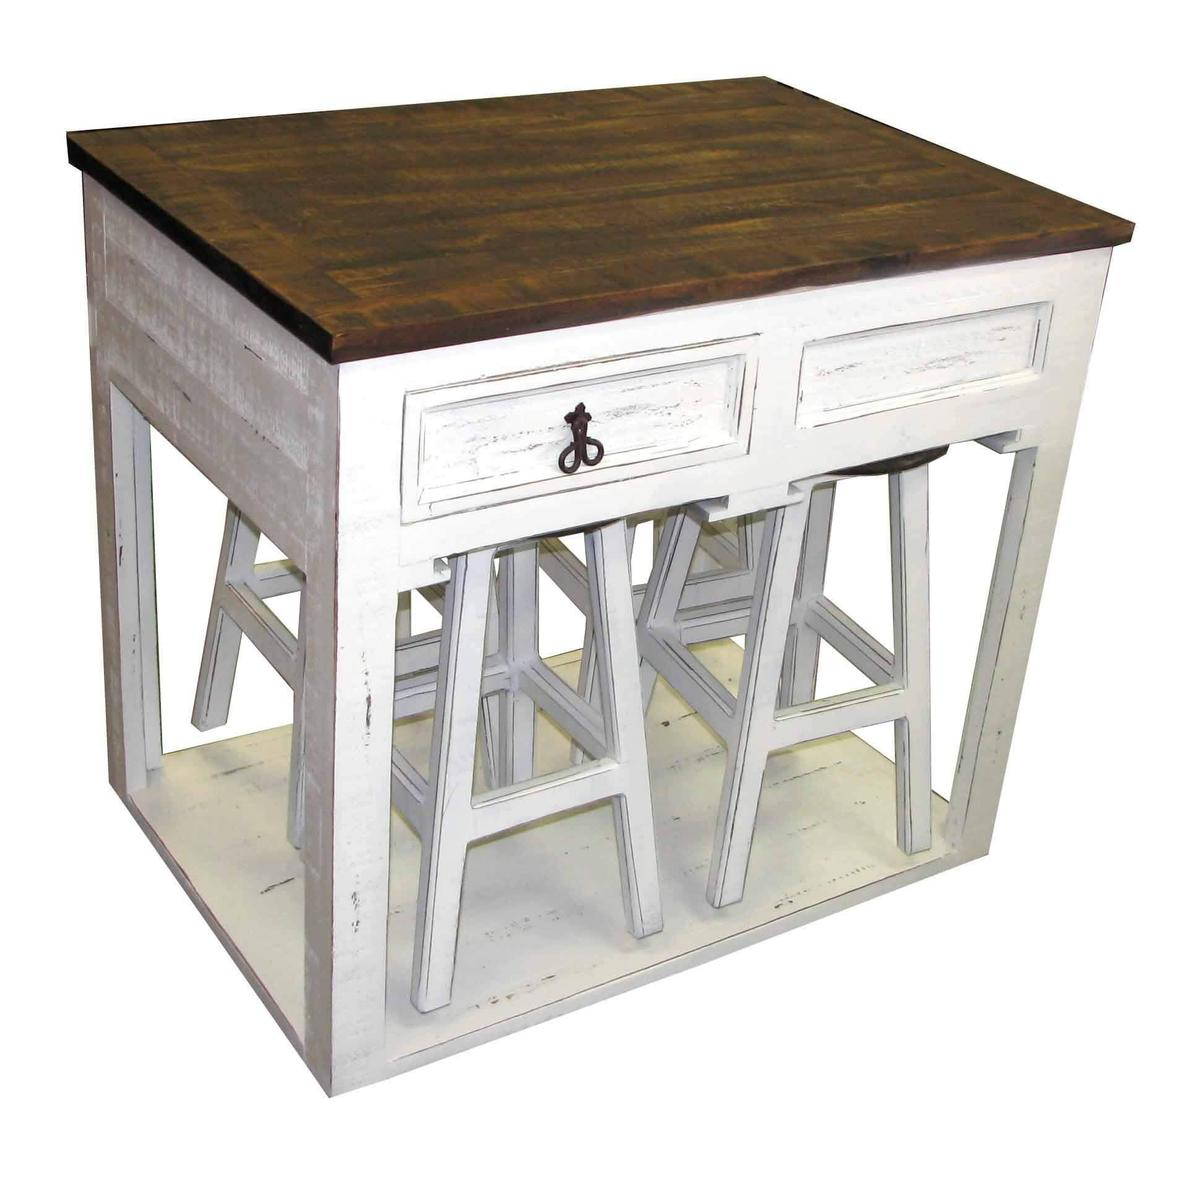 See Details - White 2 Drawer Kitchen Island with 4 Barstools -Also available in Aqua, Red, Industrial and White Lava Gray Top